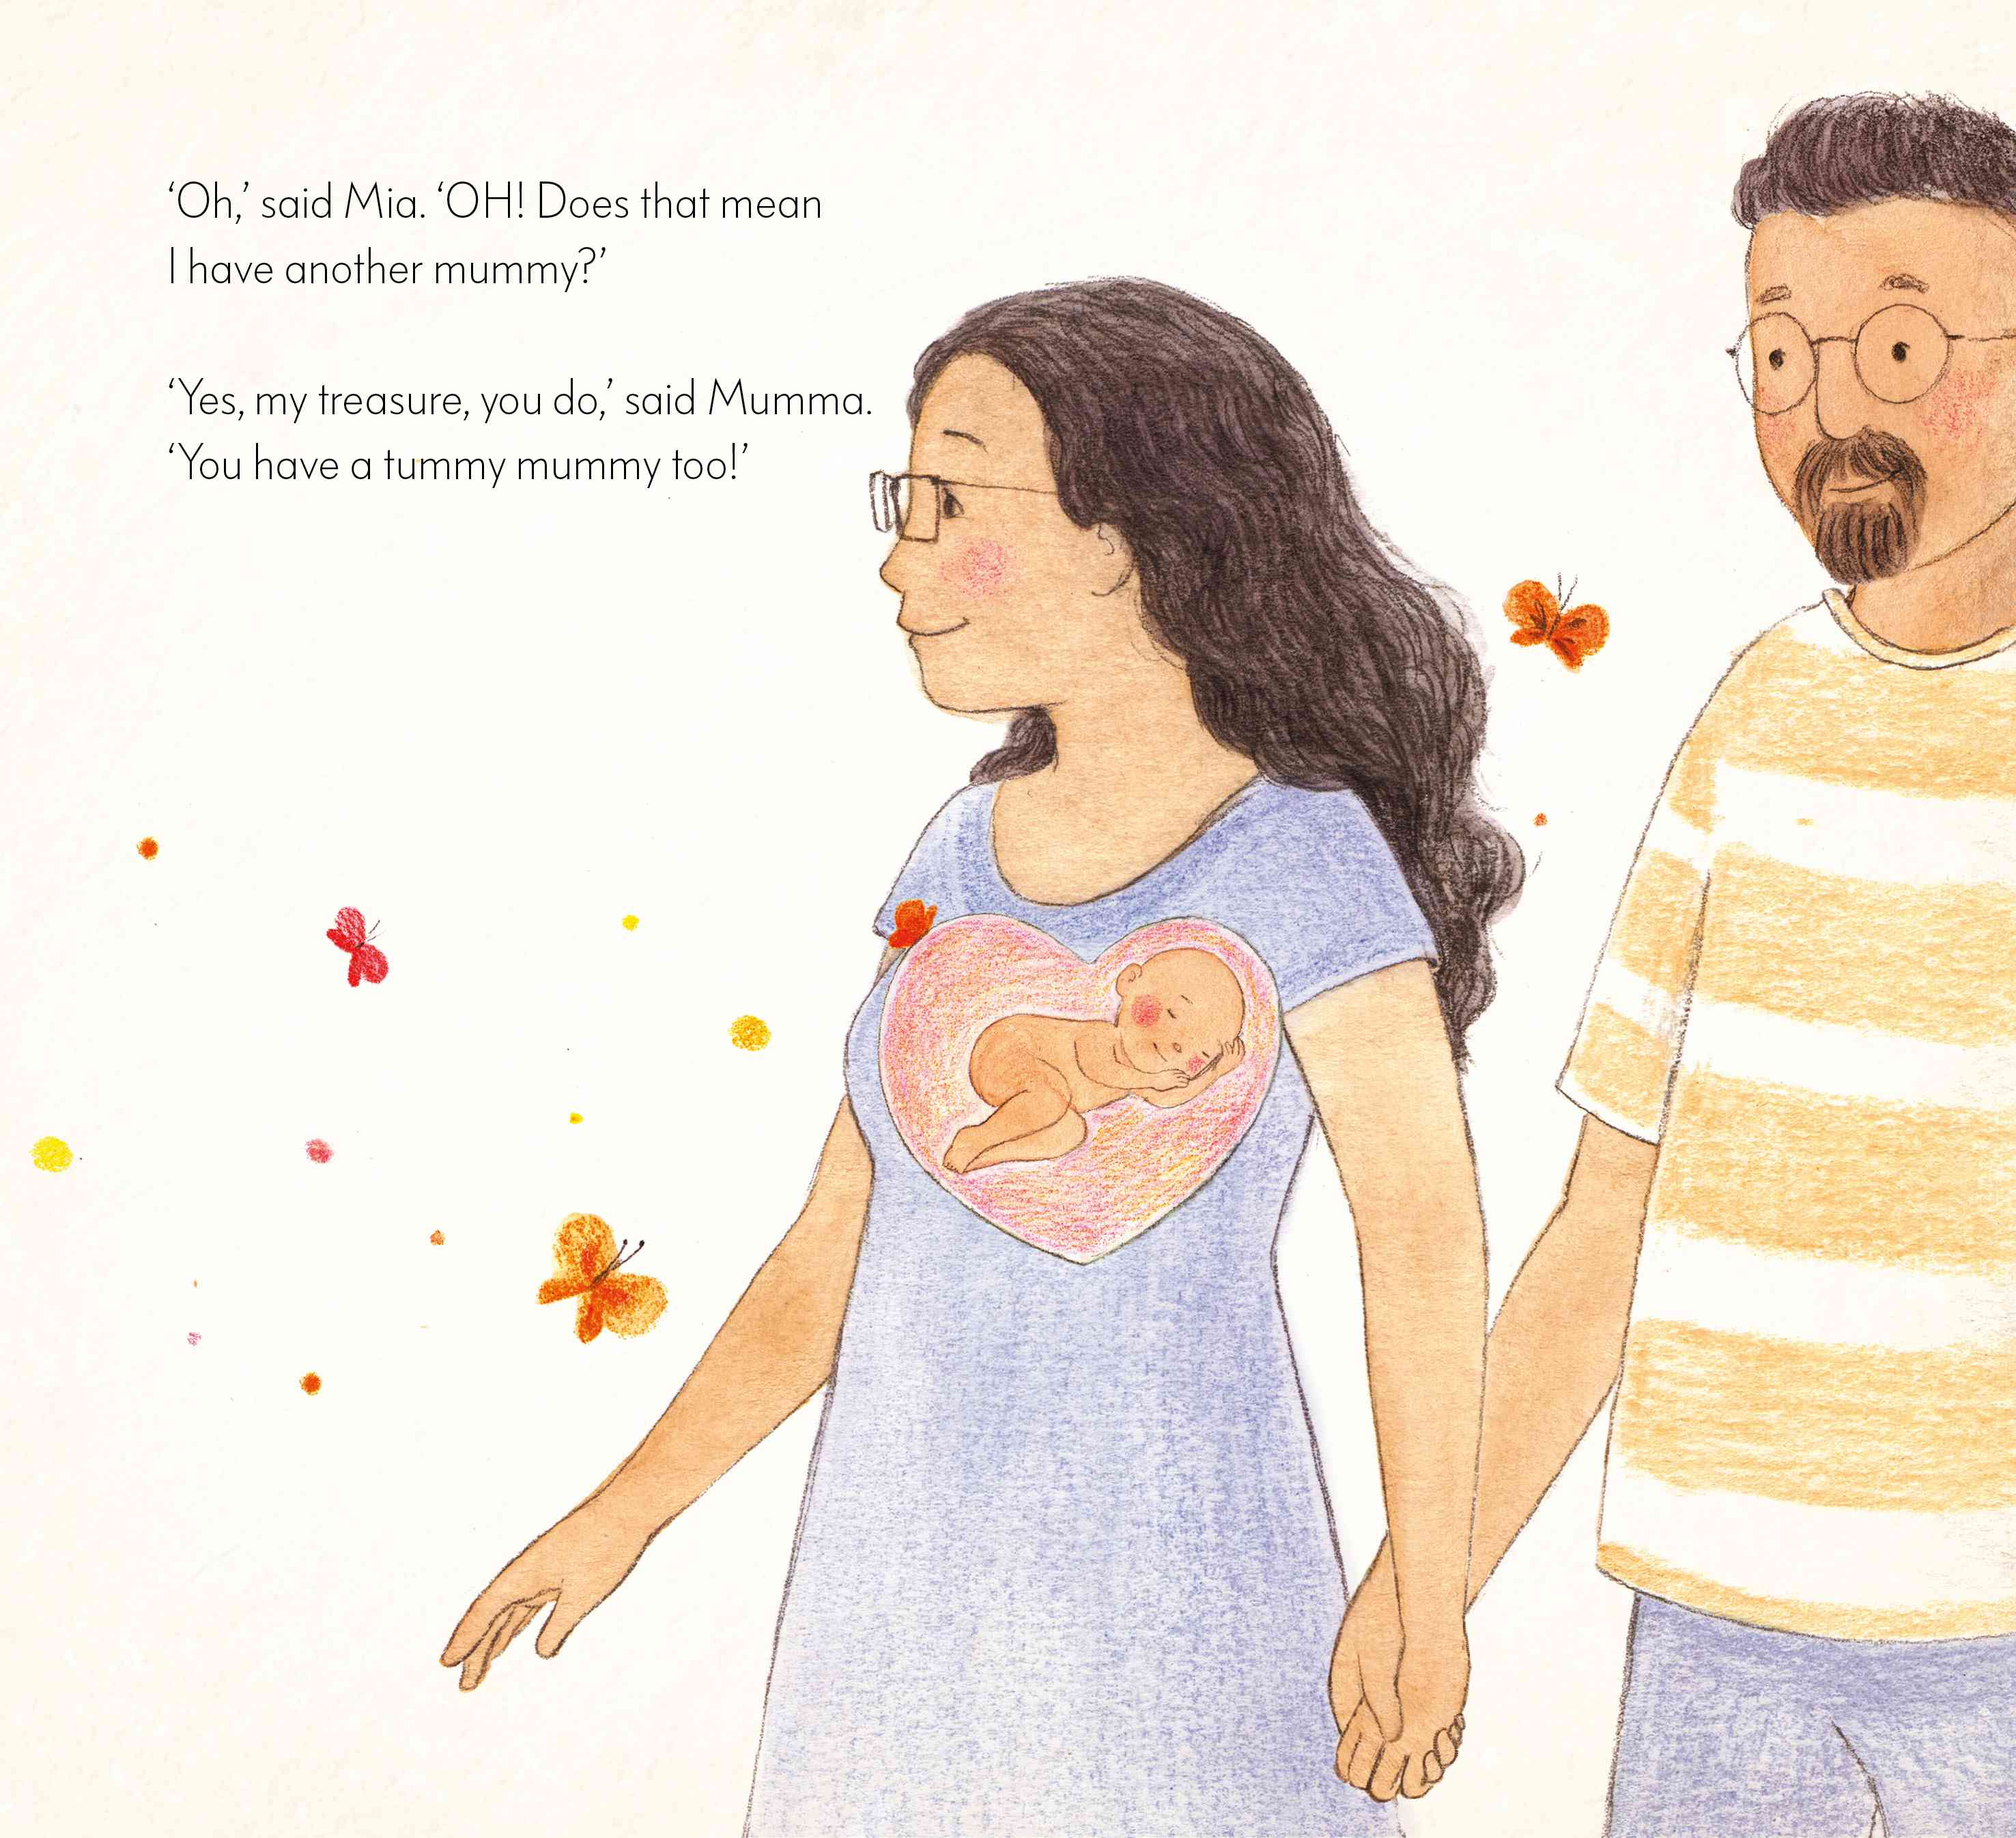 Illustration by Ruchi Mhasane from 'In My Heart'